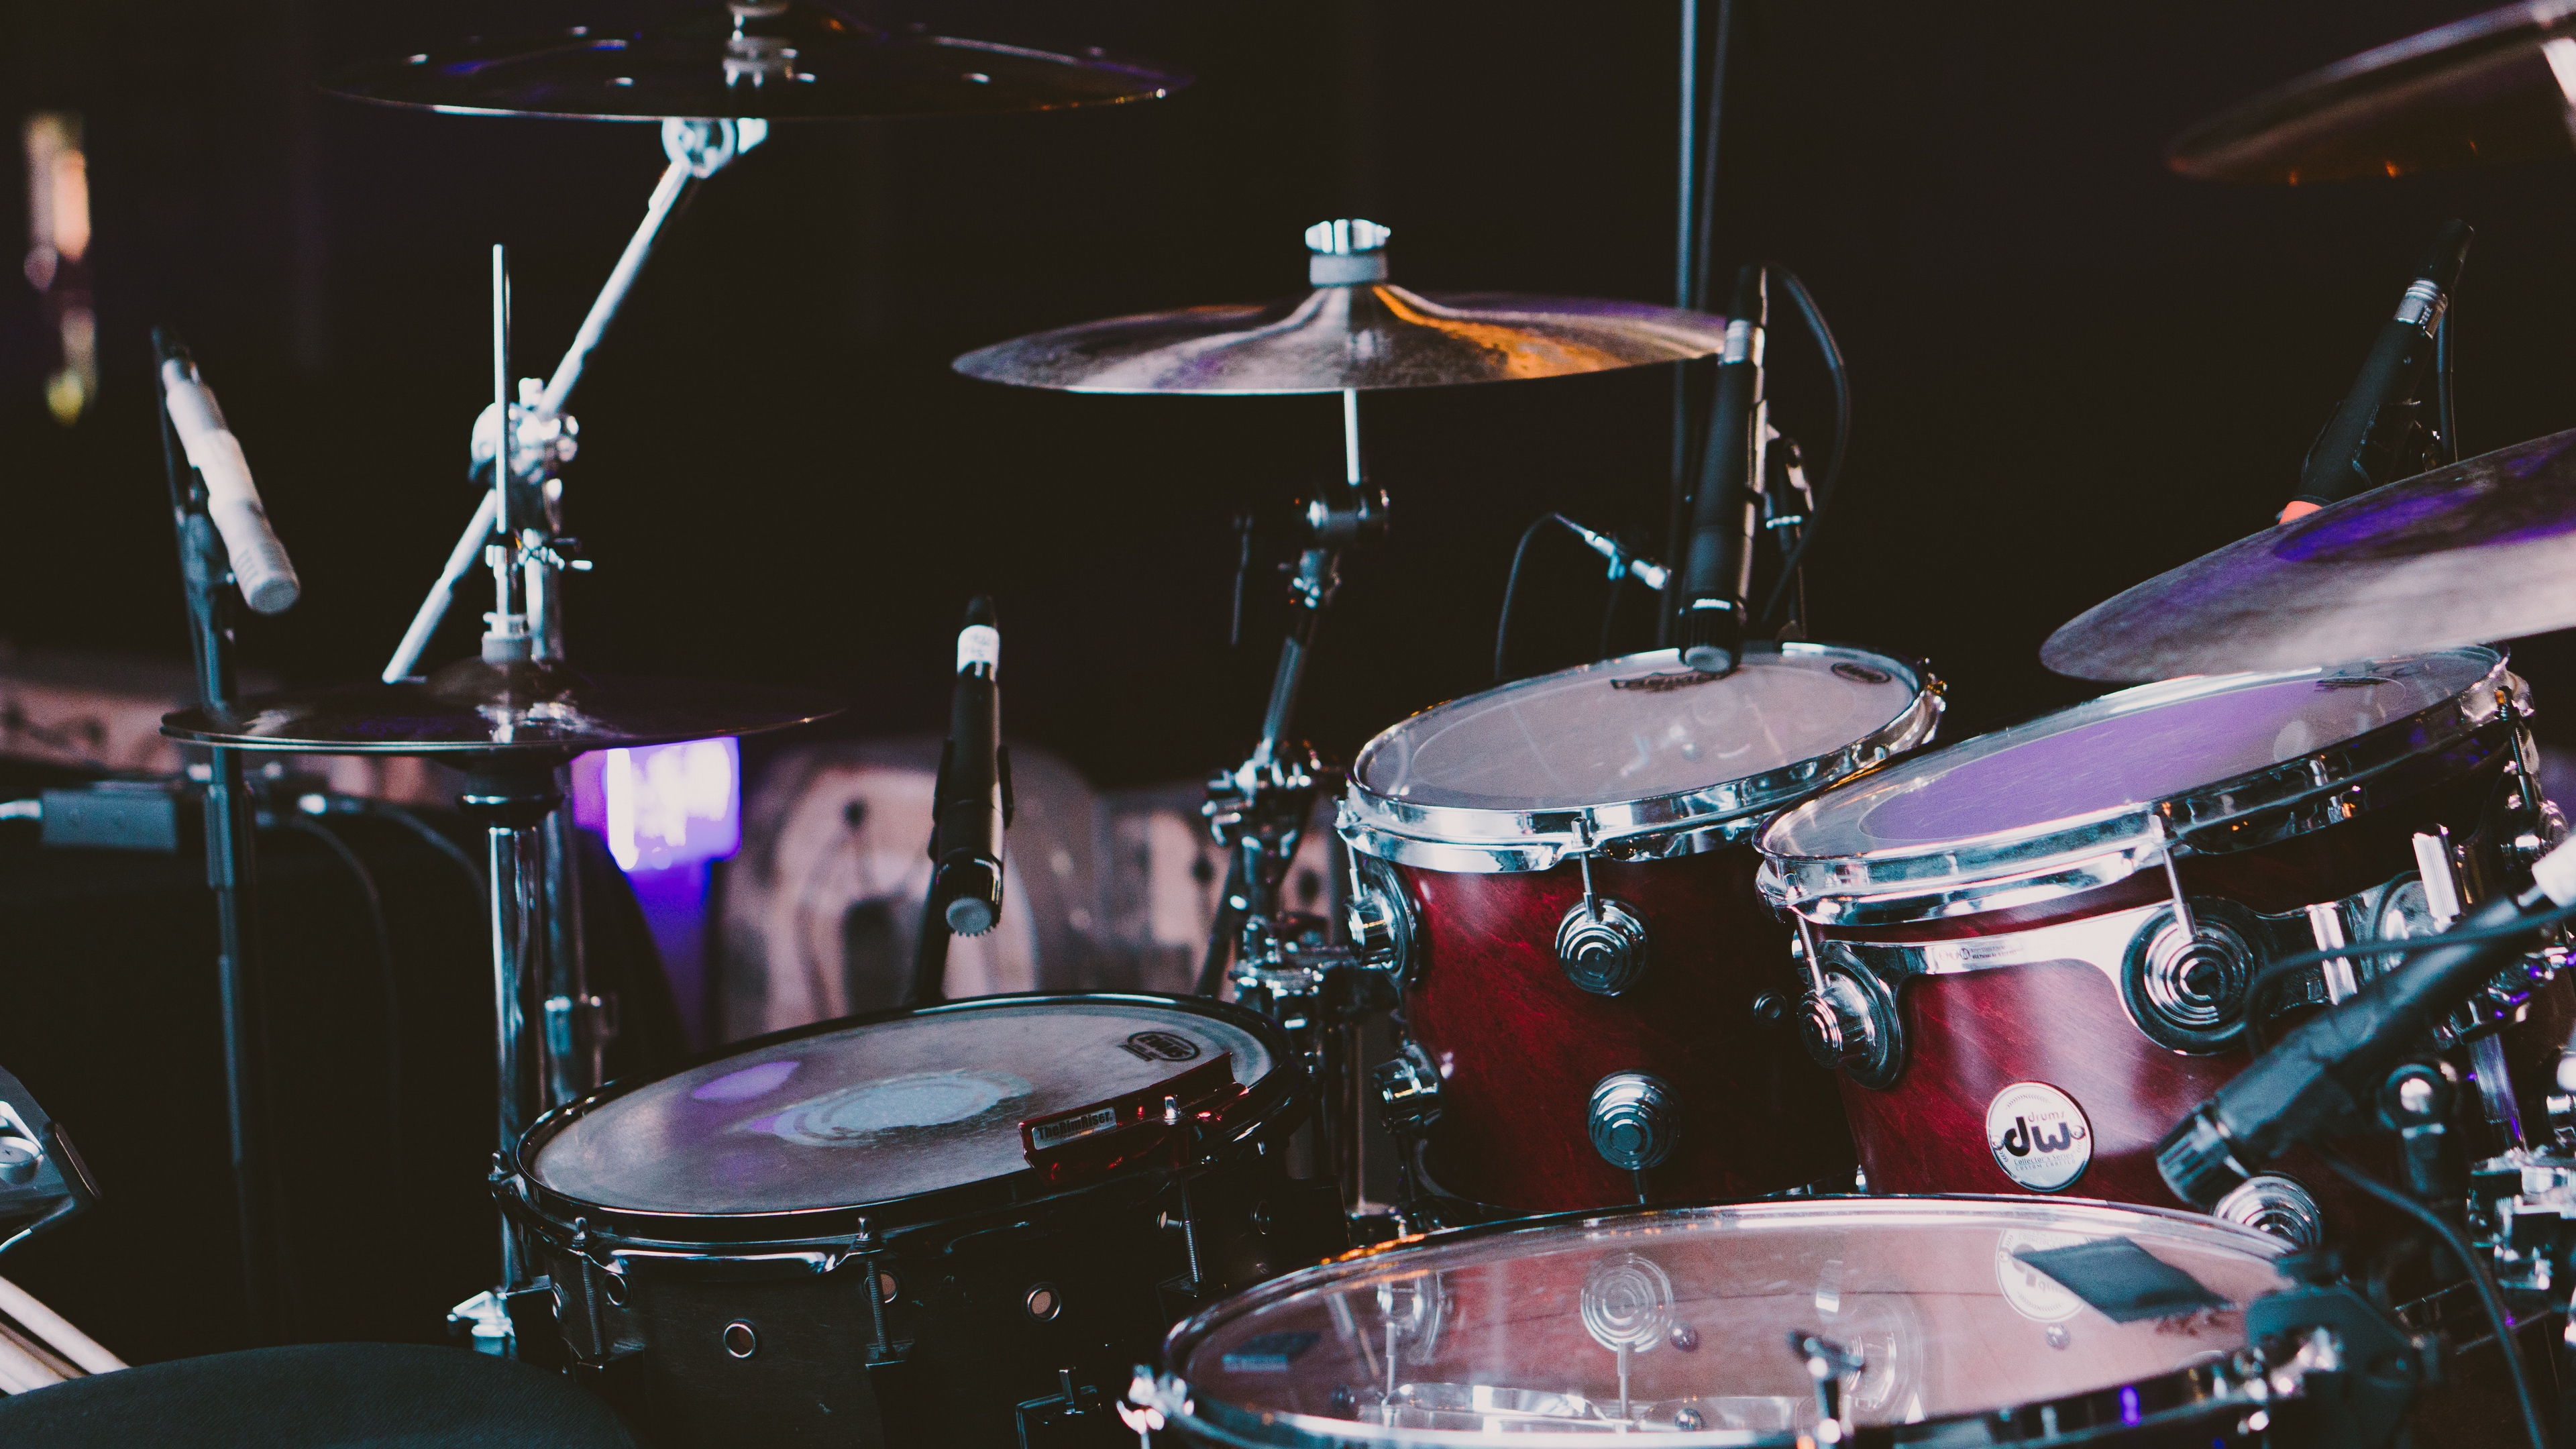 Download wallpaper 3840x2160 drum drum set drum kit musical 3840x2160